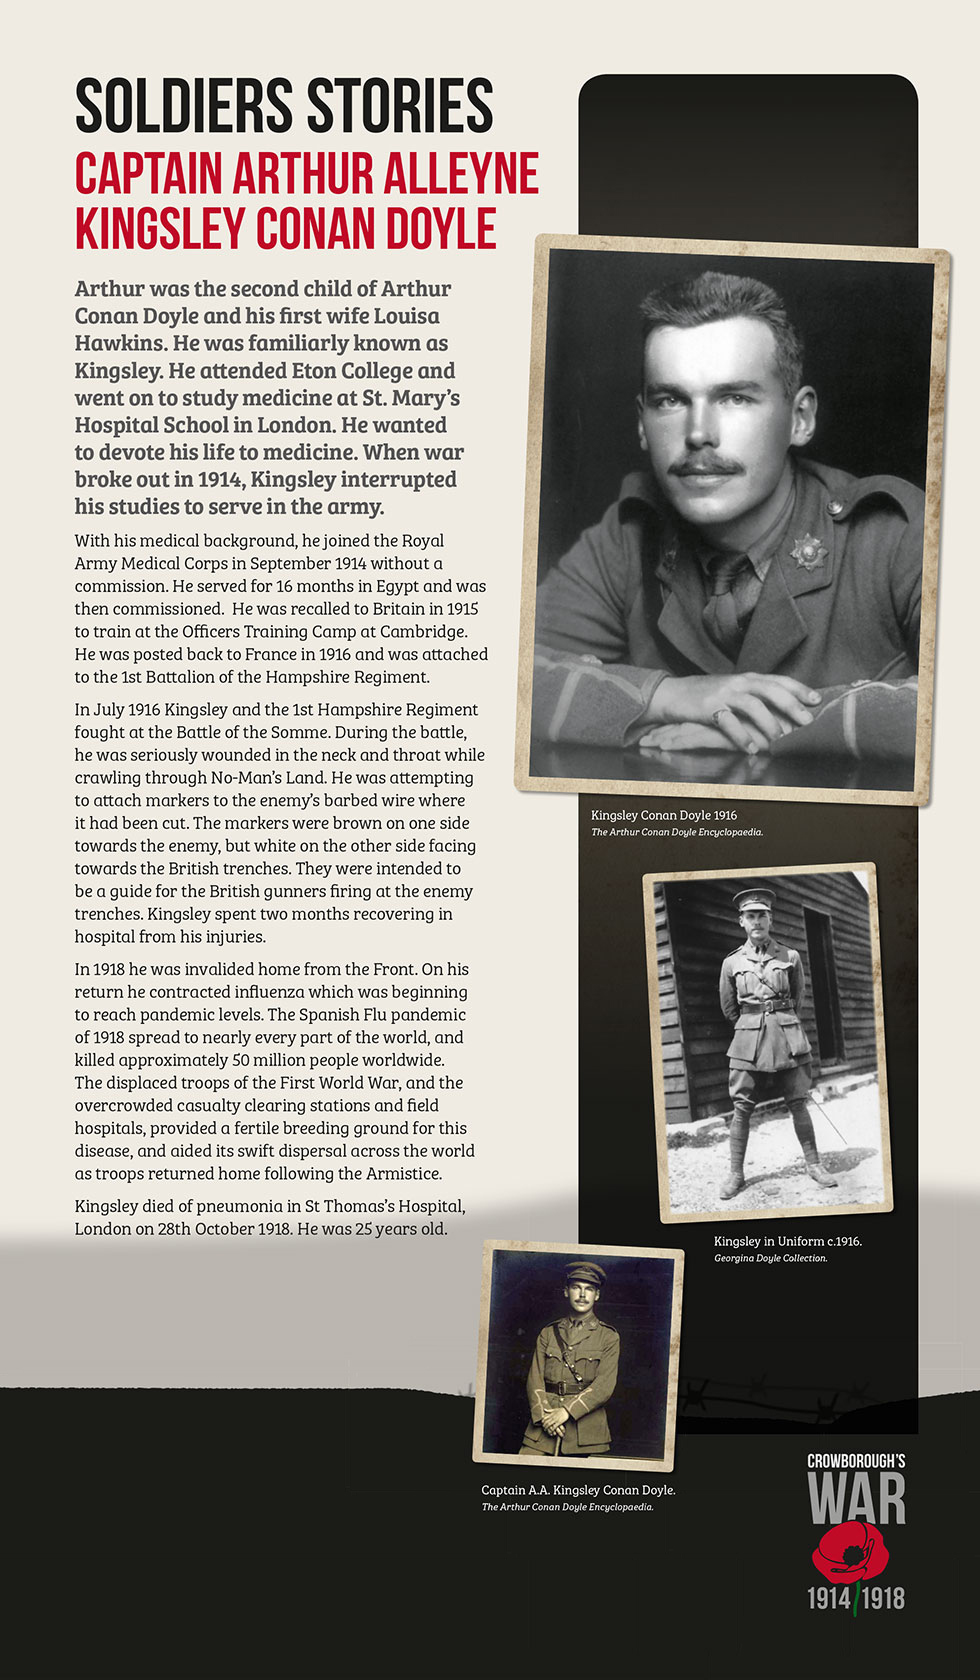 Crowborough's War Exhibition Captain Arthur Alleyne Kingsley Conan Doyle